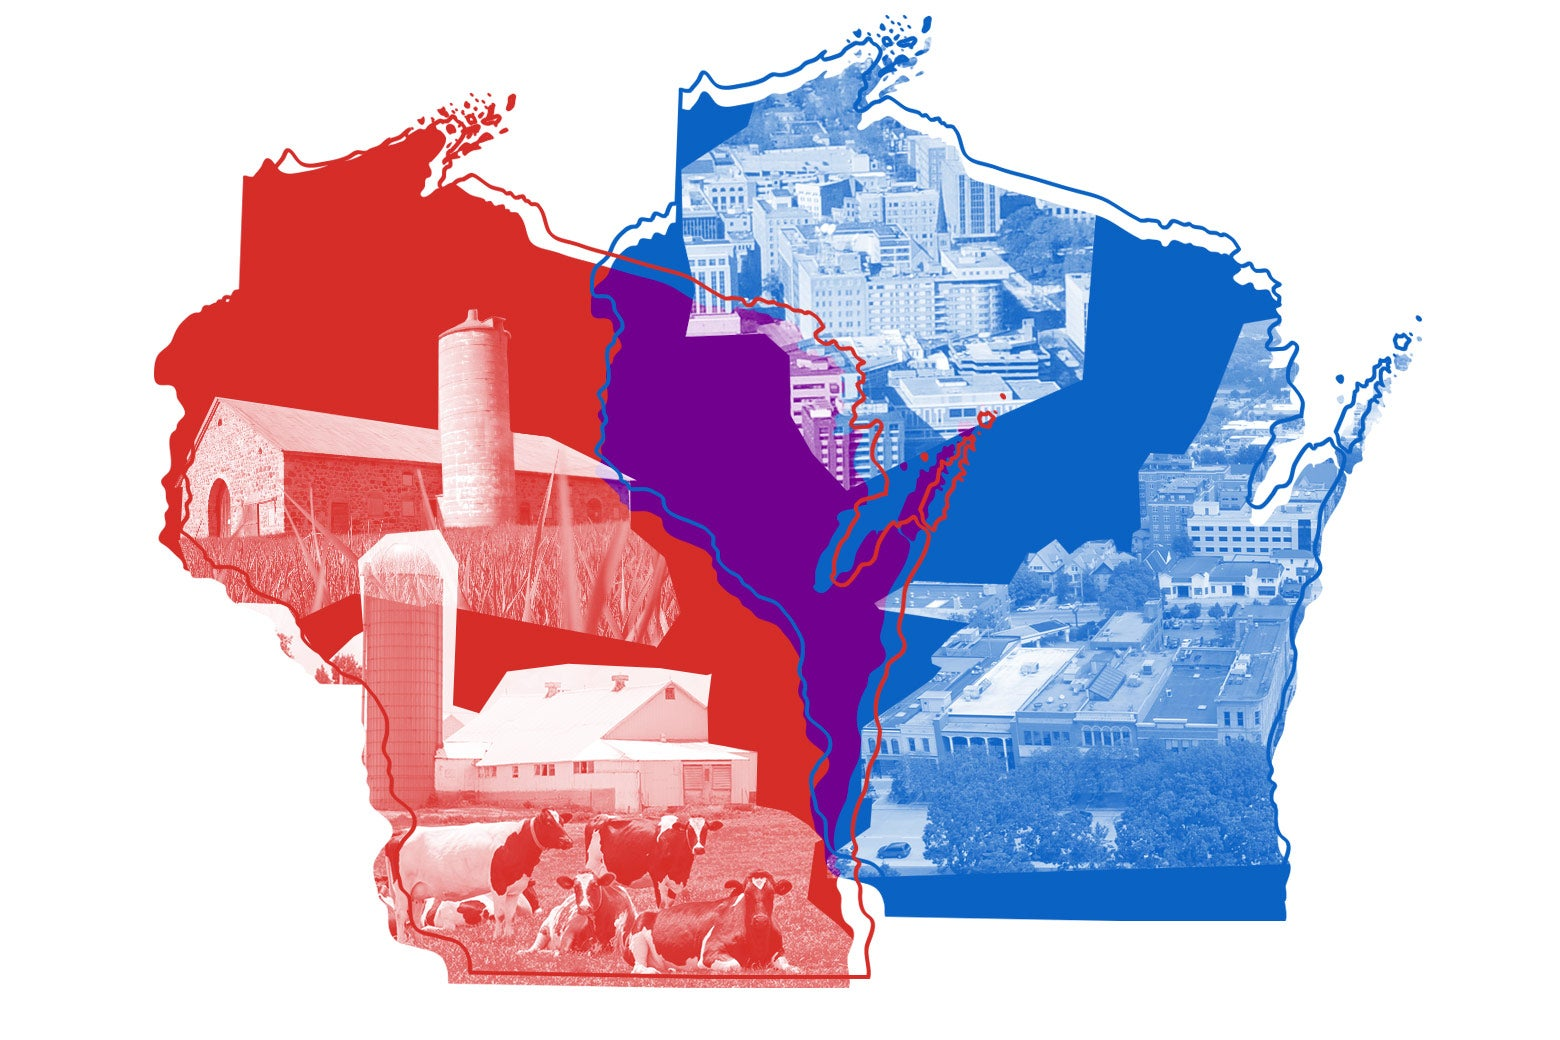 Photo illustration of two overlapping outlines of Wisconsin, one in red and one in blue. The red outline has an inner rural image, and the blue one has an inner urban image.